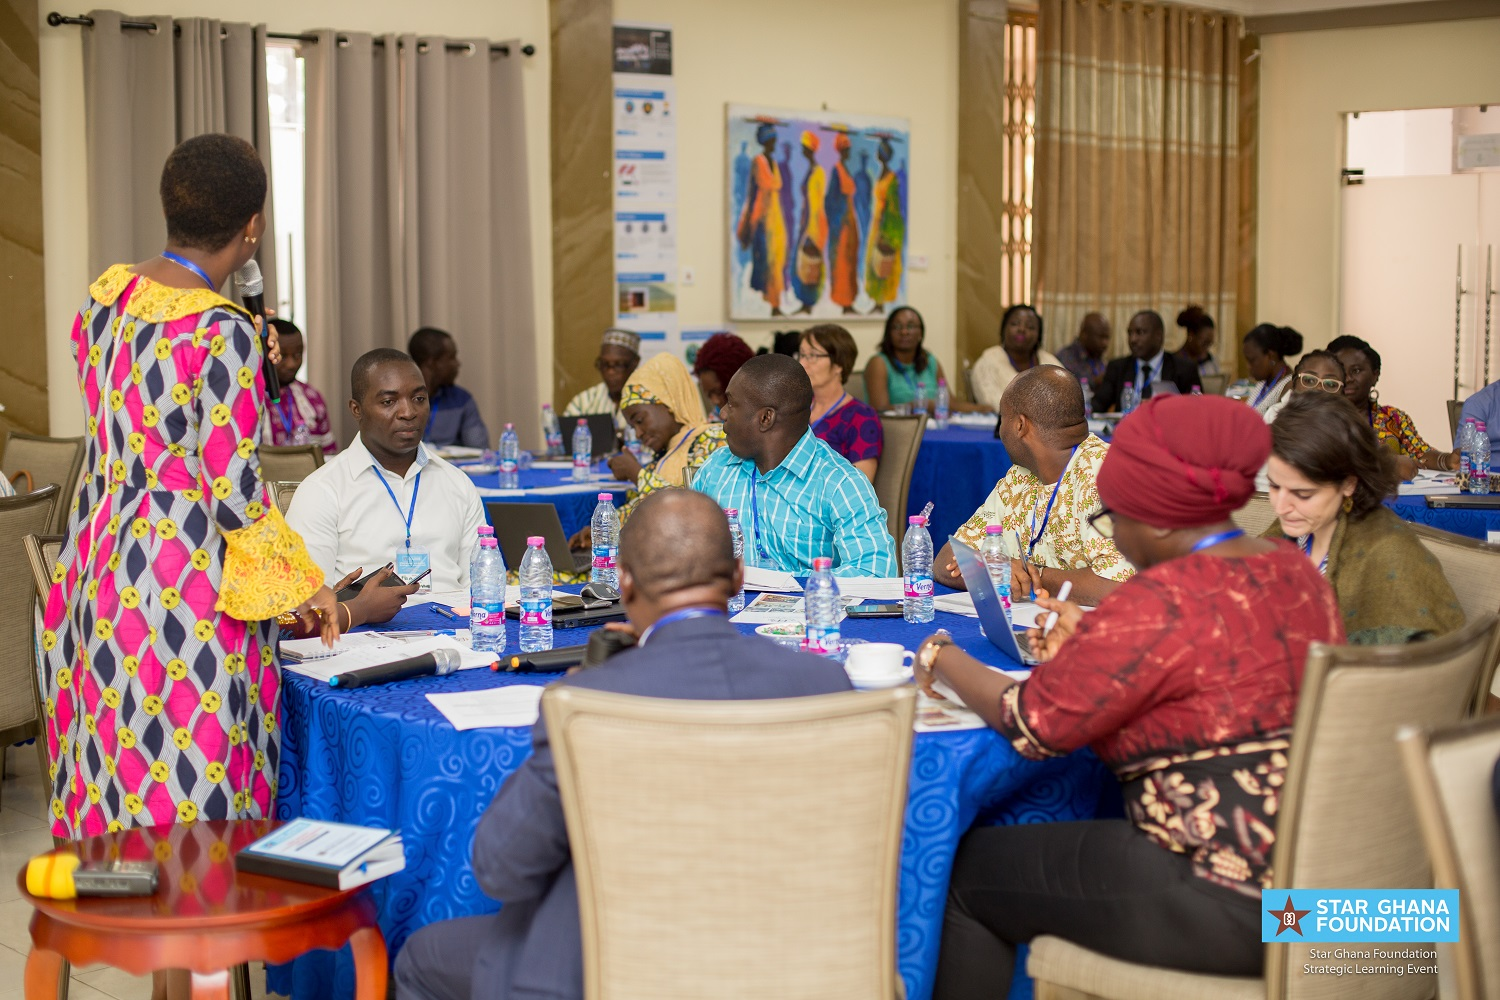 A cross-section of participants at the event